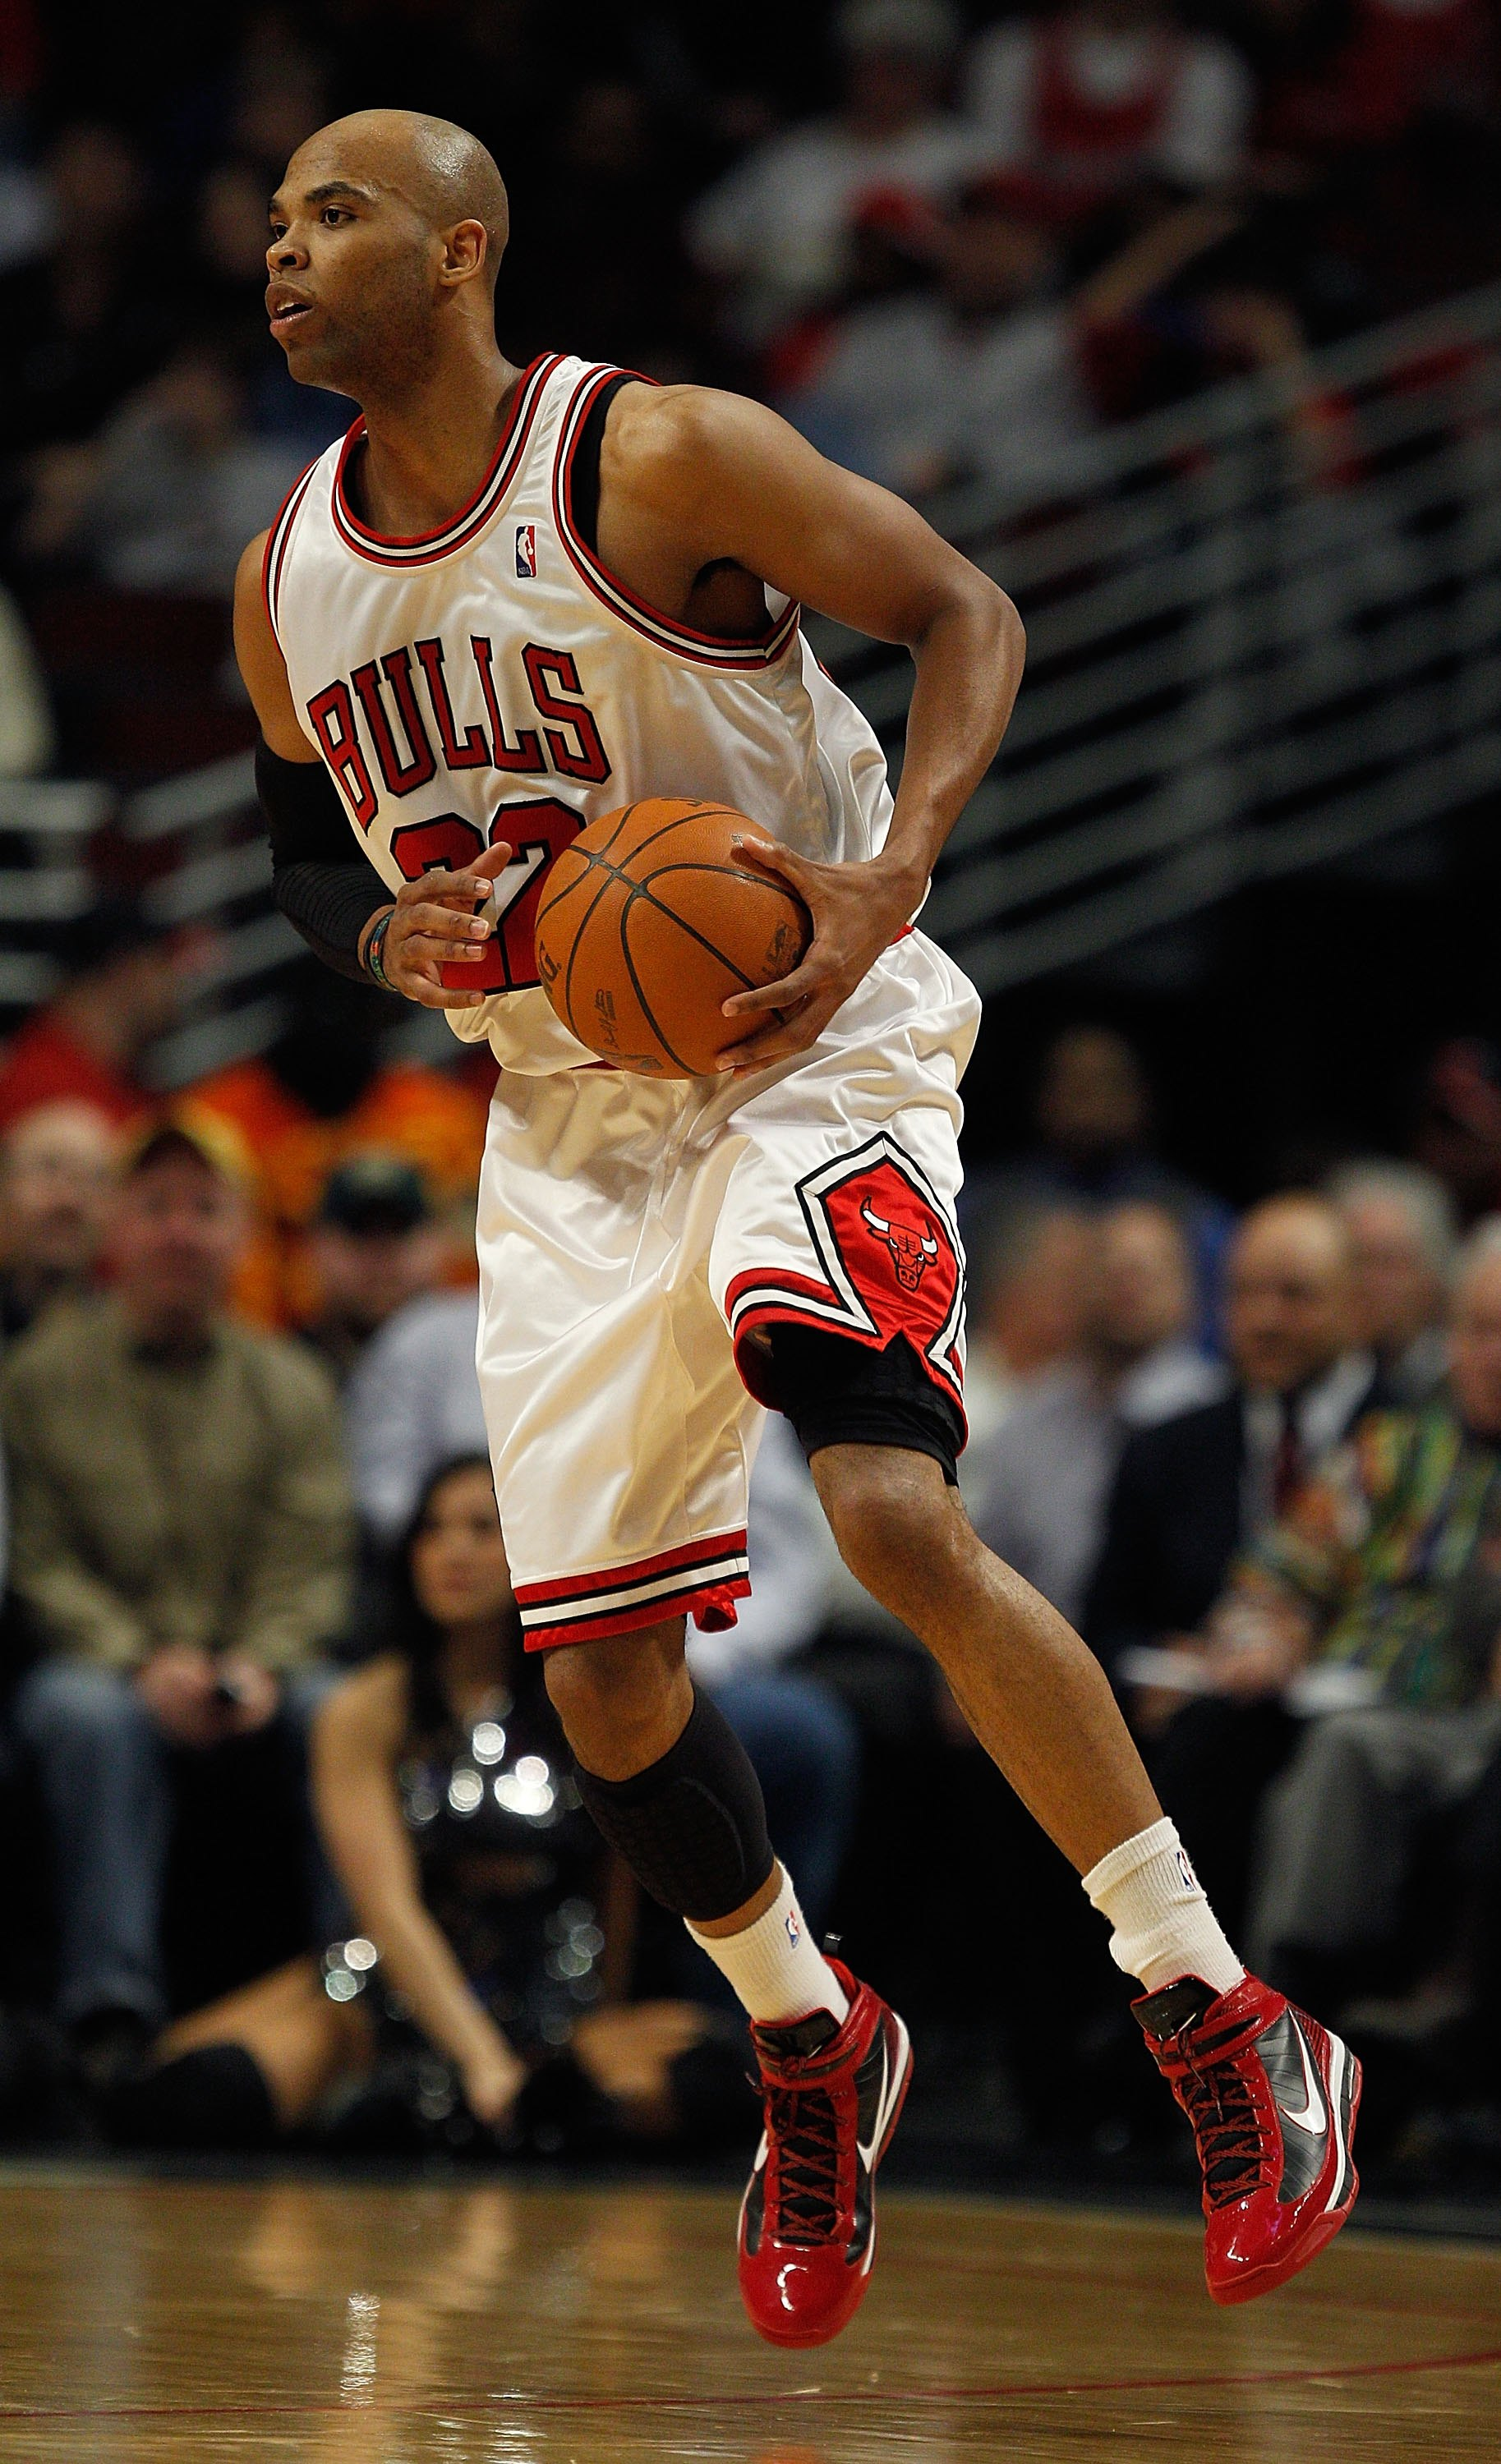 CHICAGO - MARCH 30: Taj Gibson #22 of the Chicago Bulls looks to pass against the Phoenix Suns at the United Center on March 30, 2010 in Chicago, Illinois. The Suns defeated the Bulls 111-105. NOTE TO USER: User expressly acknowledges and agrees that, by